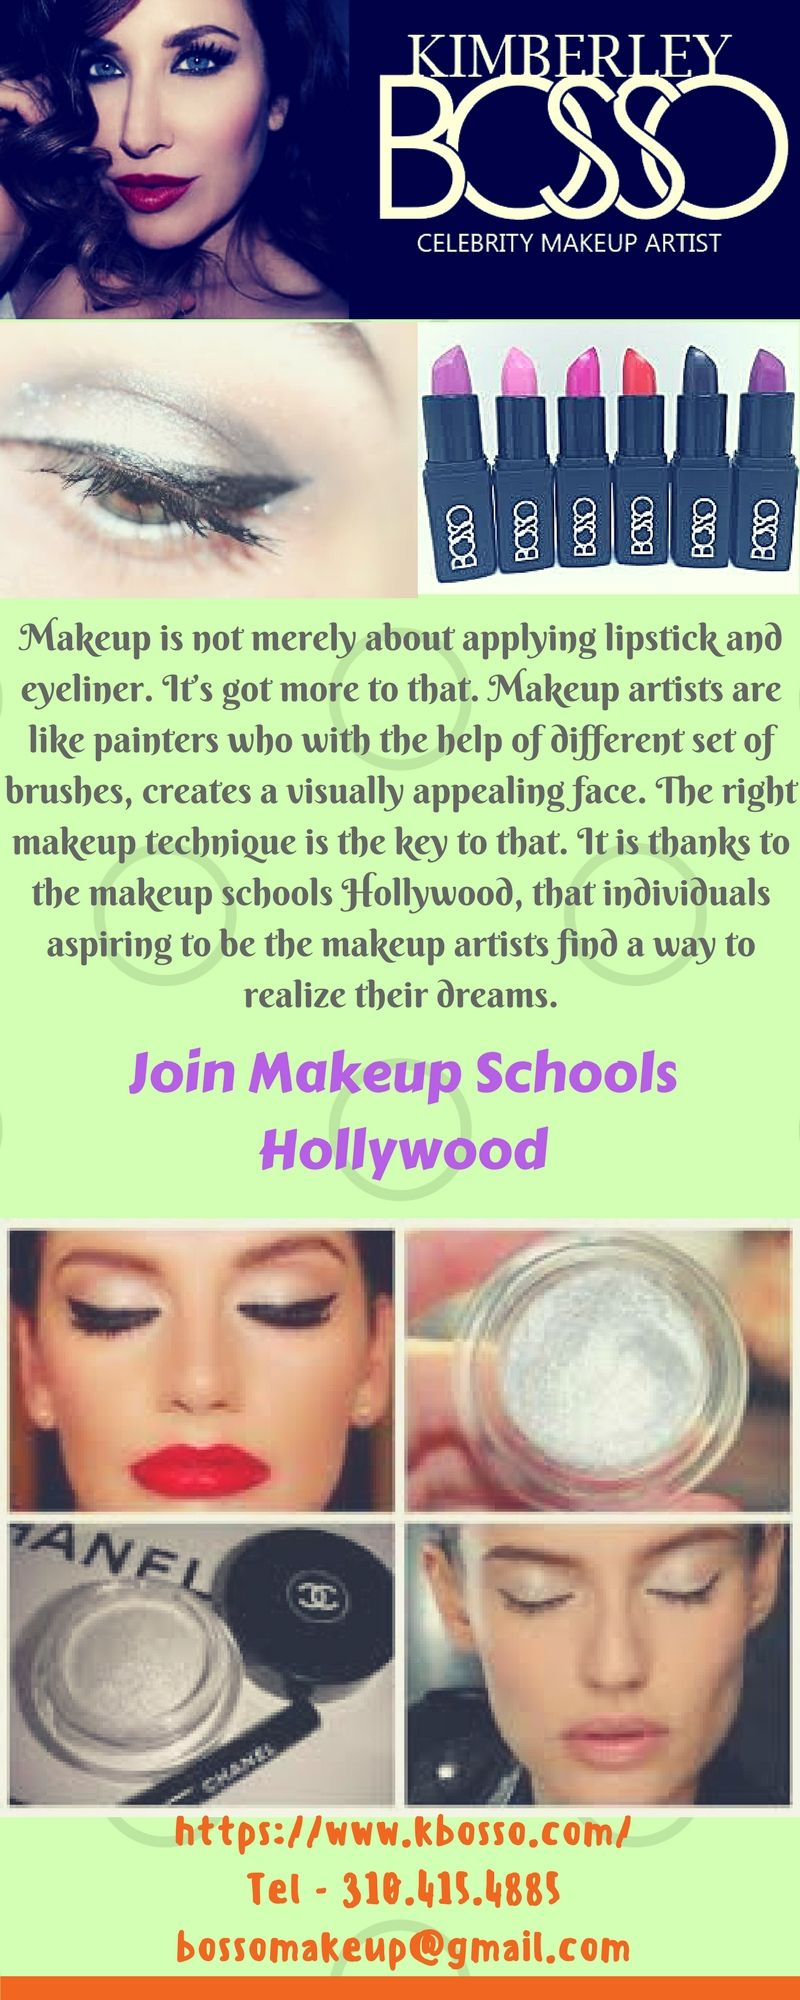 Benefits Of Joining Makeup Schools Hollywood Celebrity Makeup Artist School Makeup Celebrity Makeup